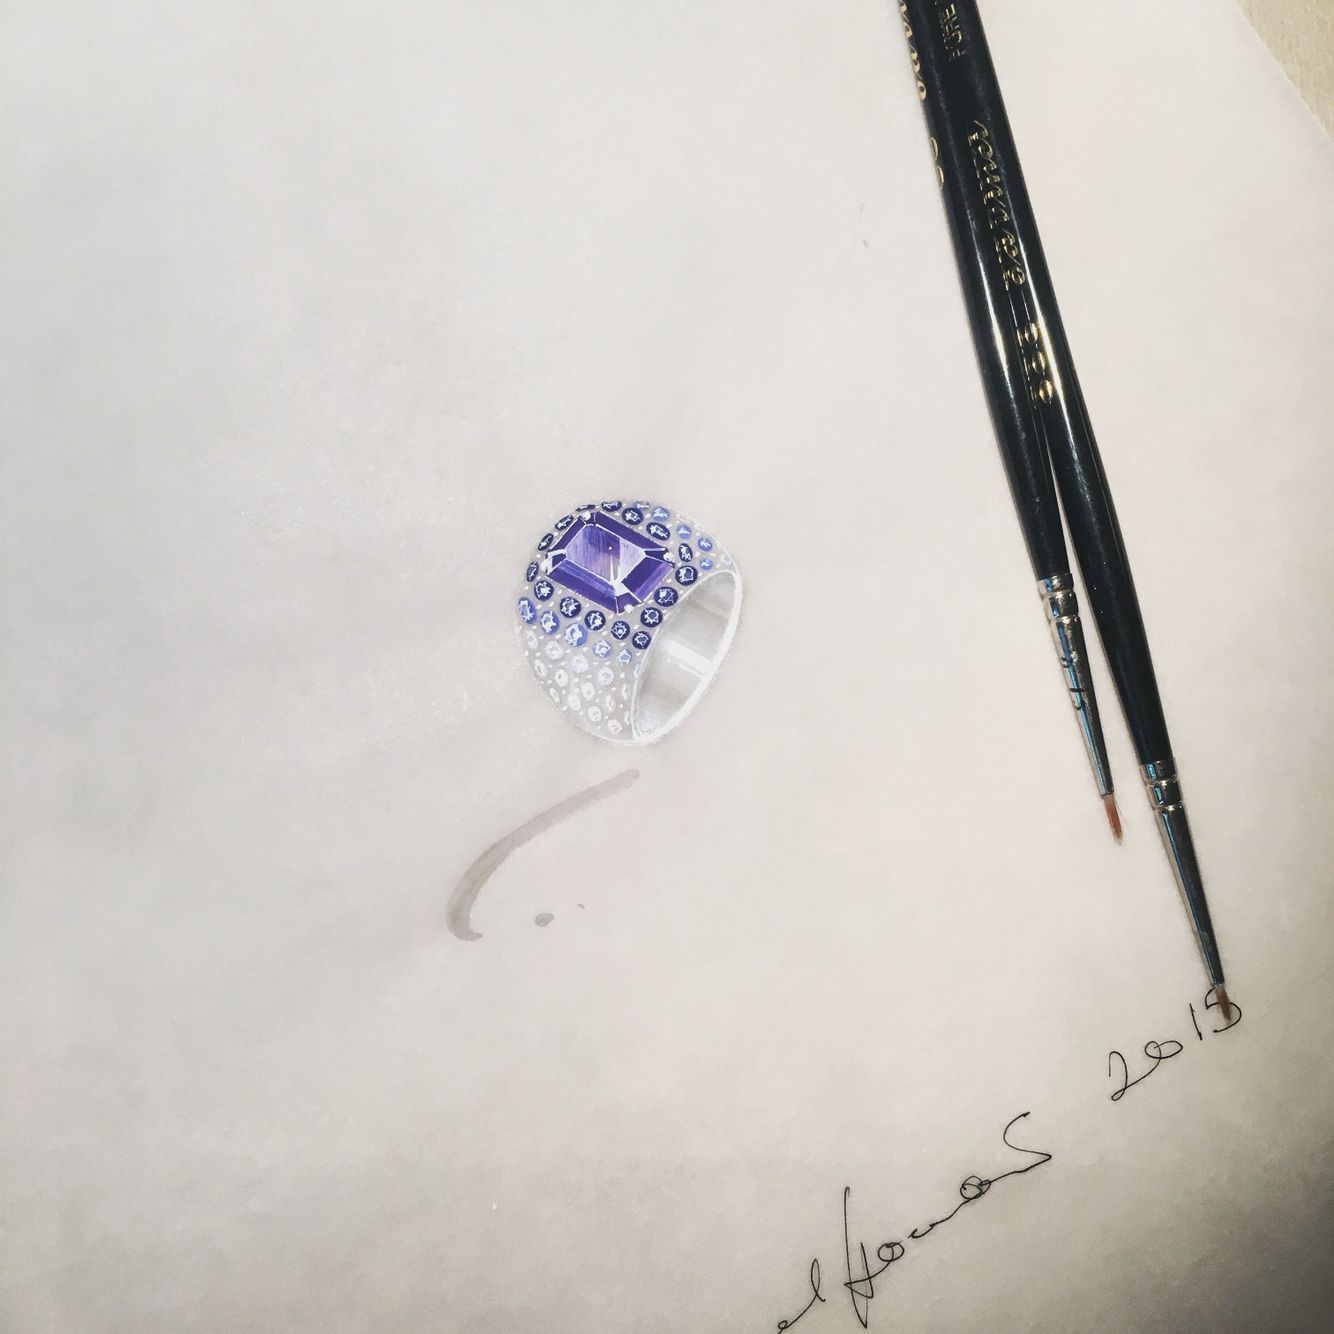 Jewellery render in gouache for a bombé style ring in sapphires and diamonds